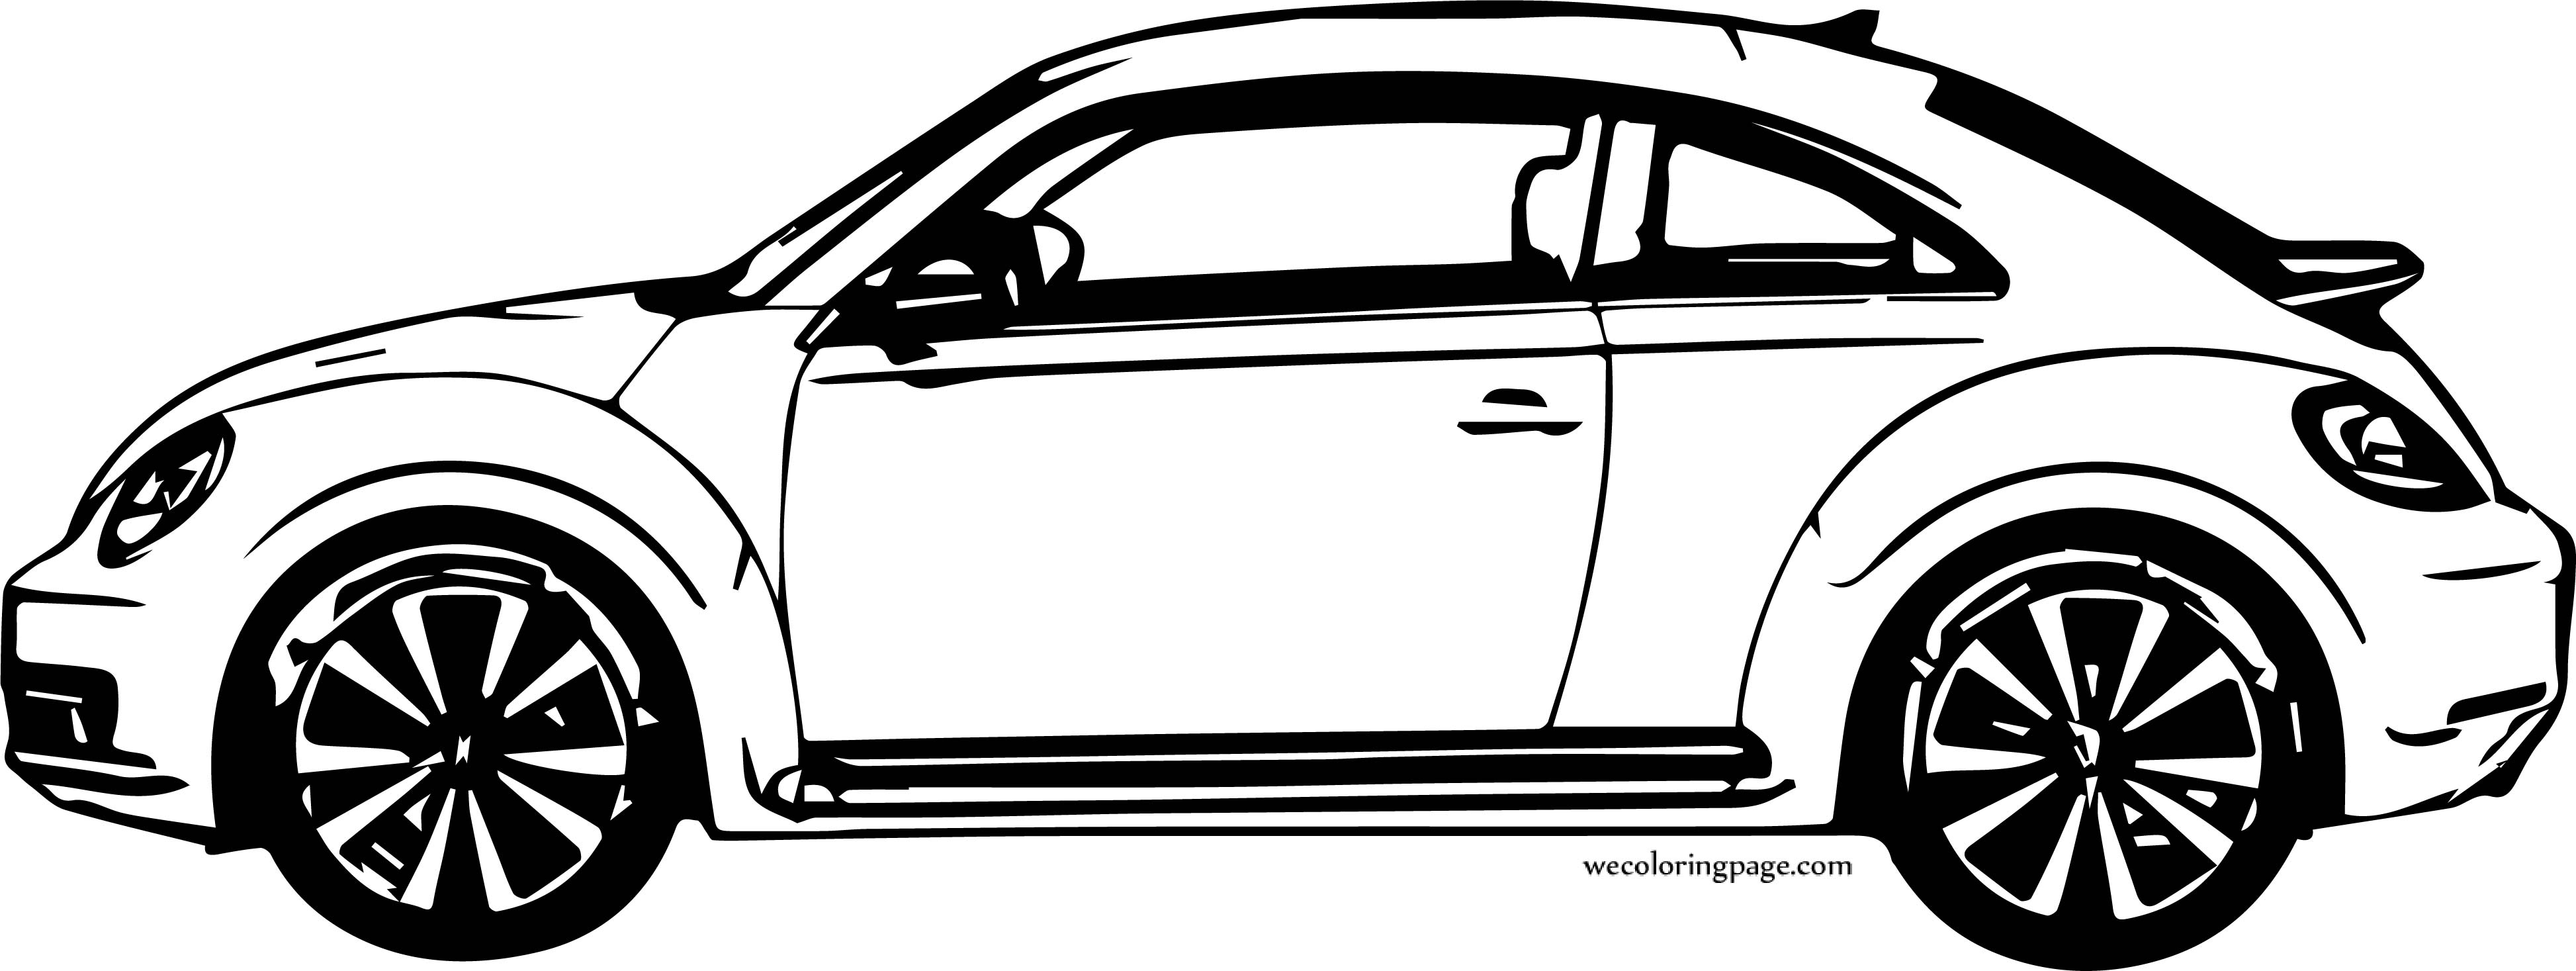 Car Wecoloringpage Coloring Page 194